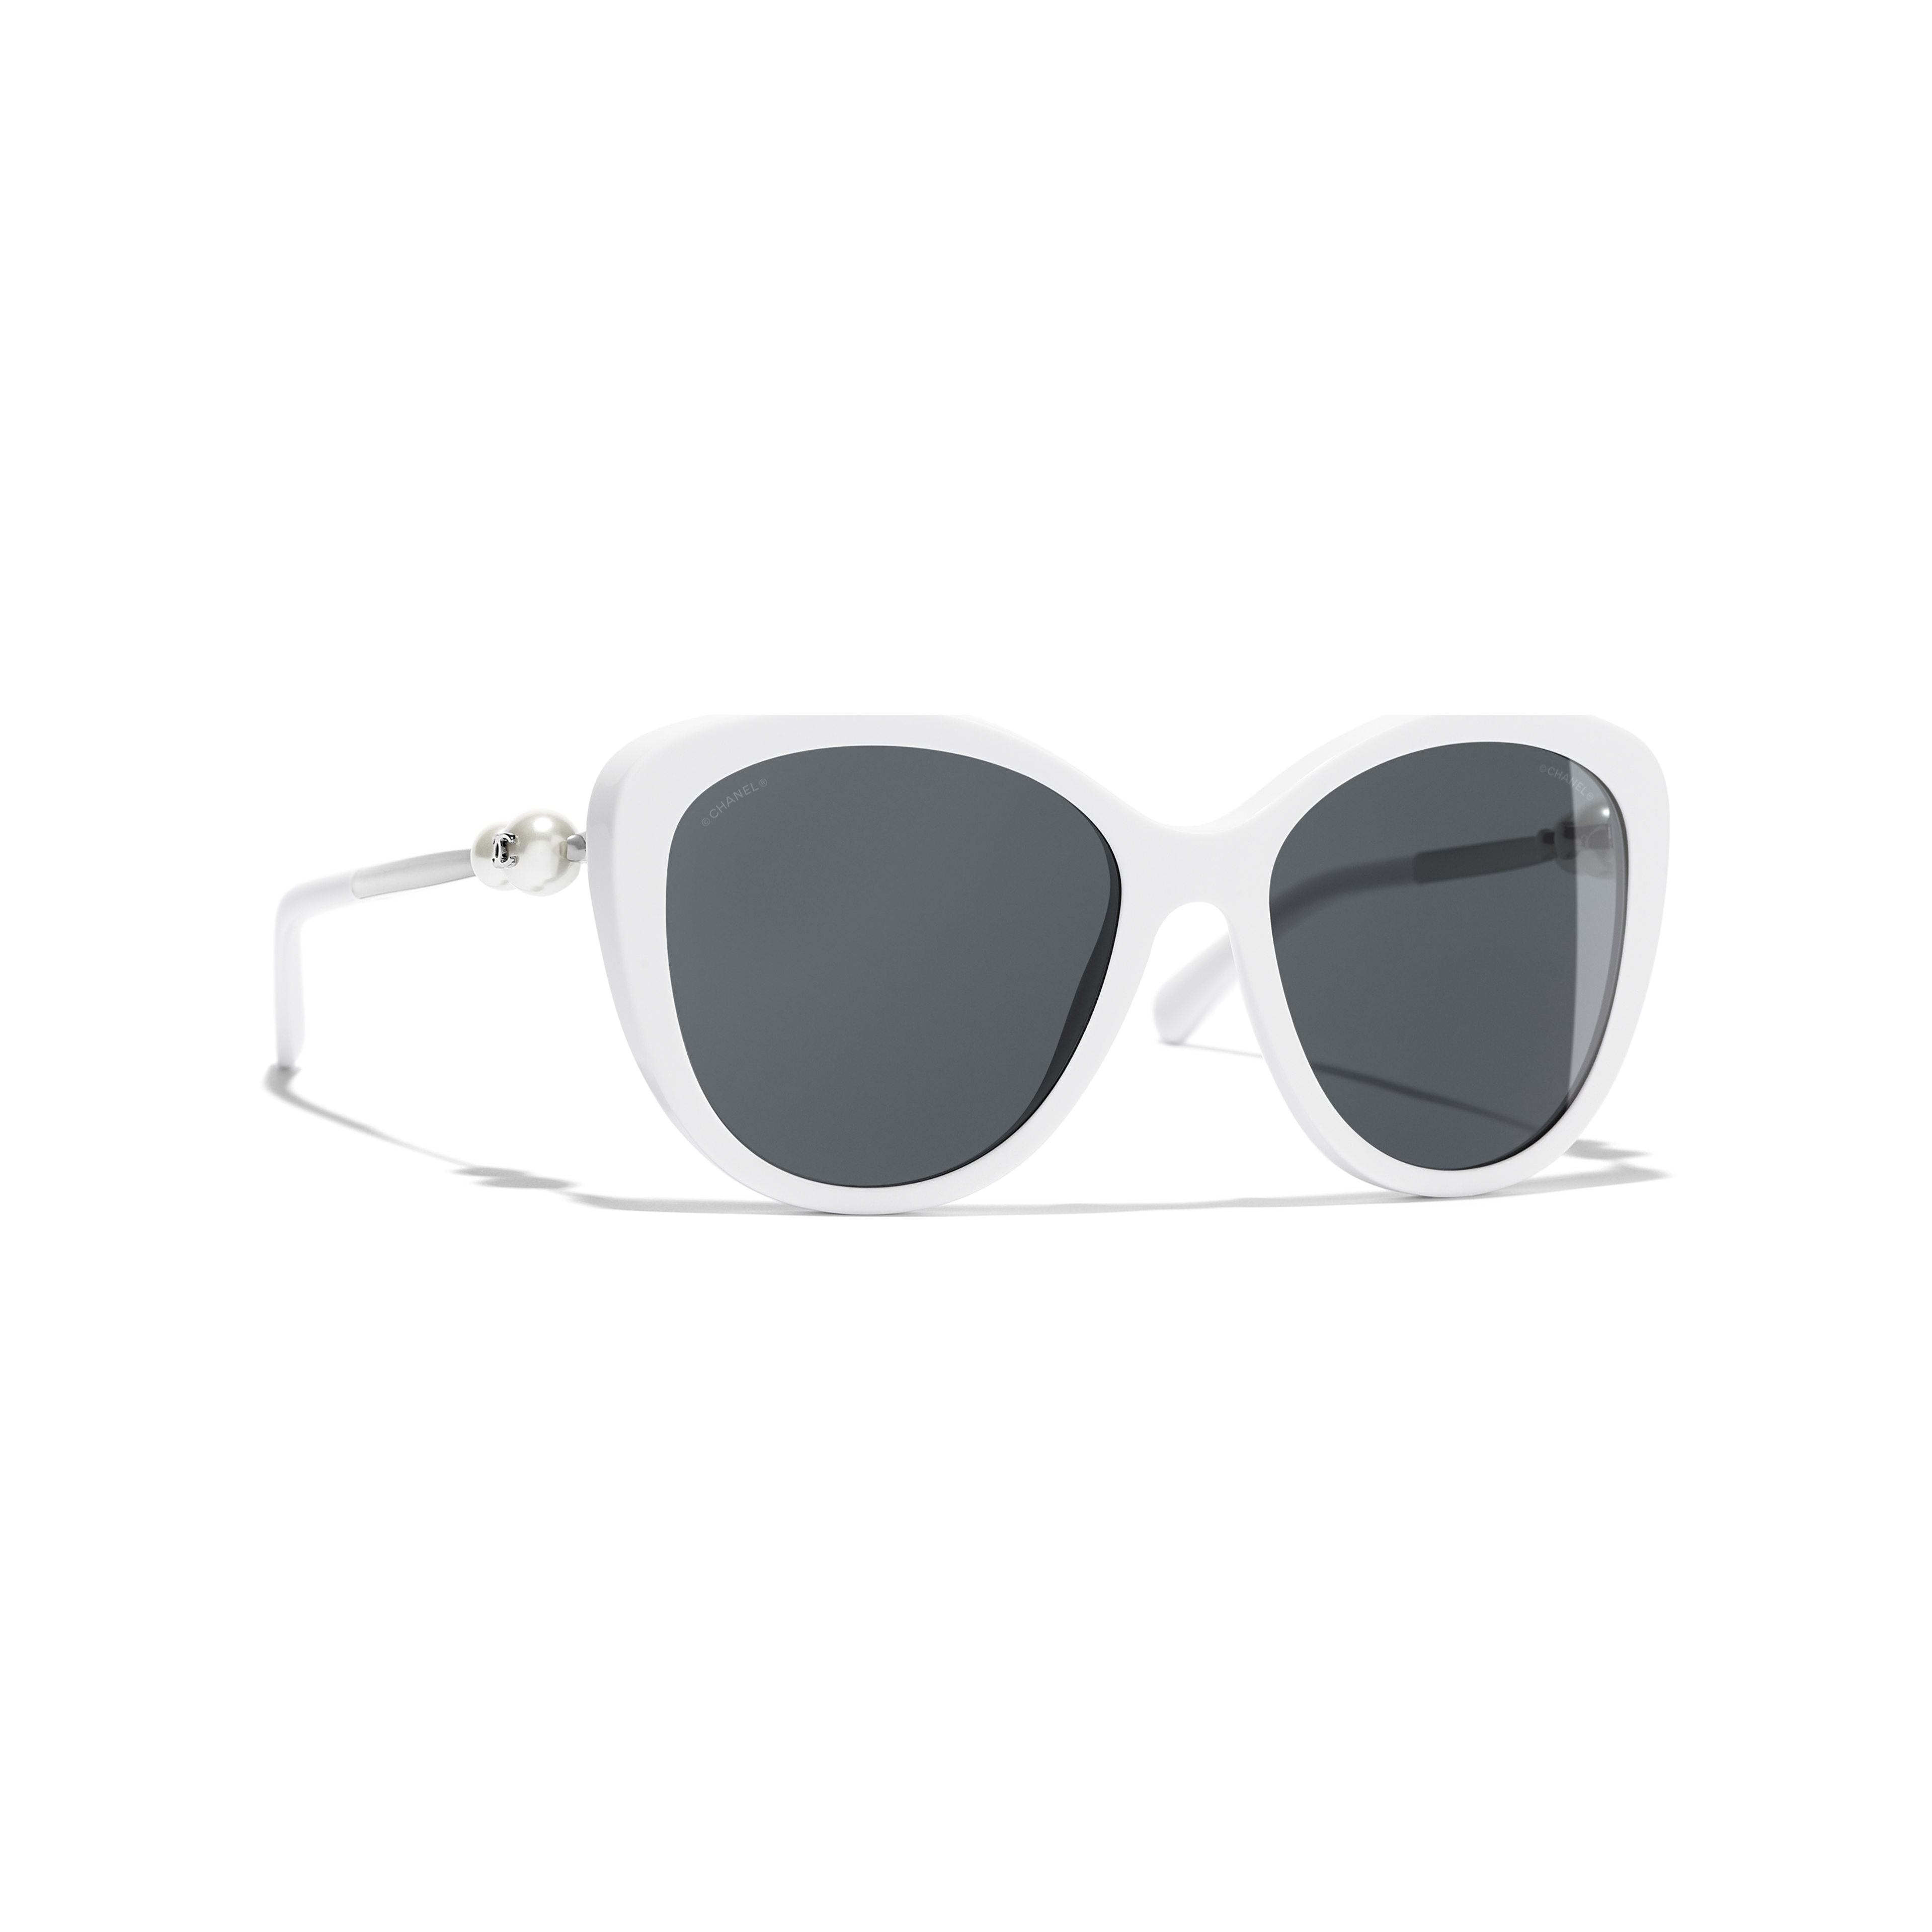 Butterfly Sunglasses - White - Acetate & Imitation Pearls - Default view - see full sized version